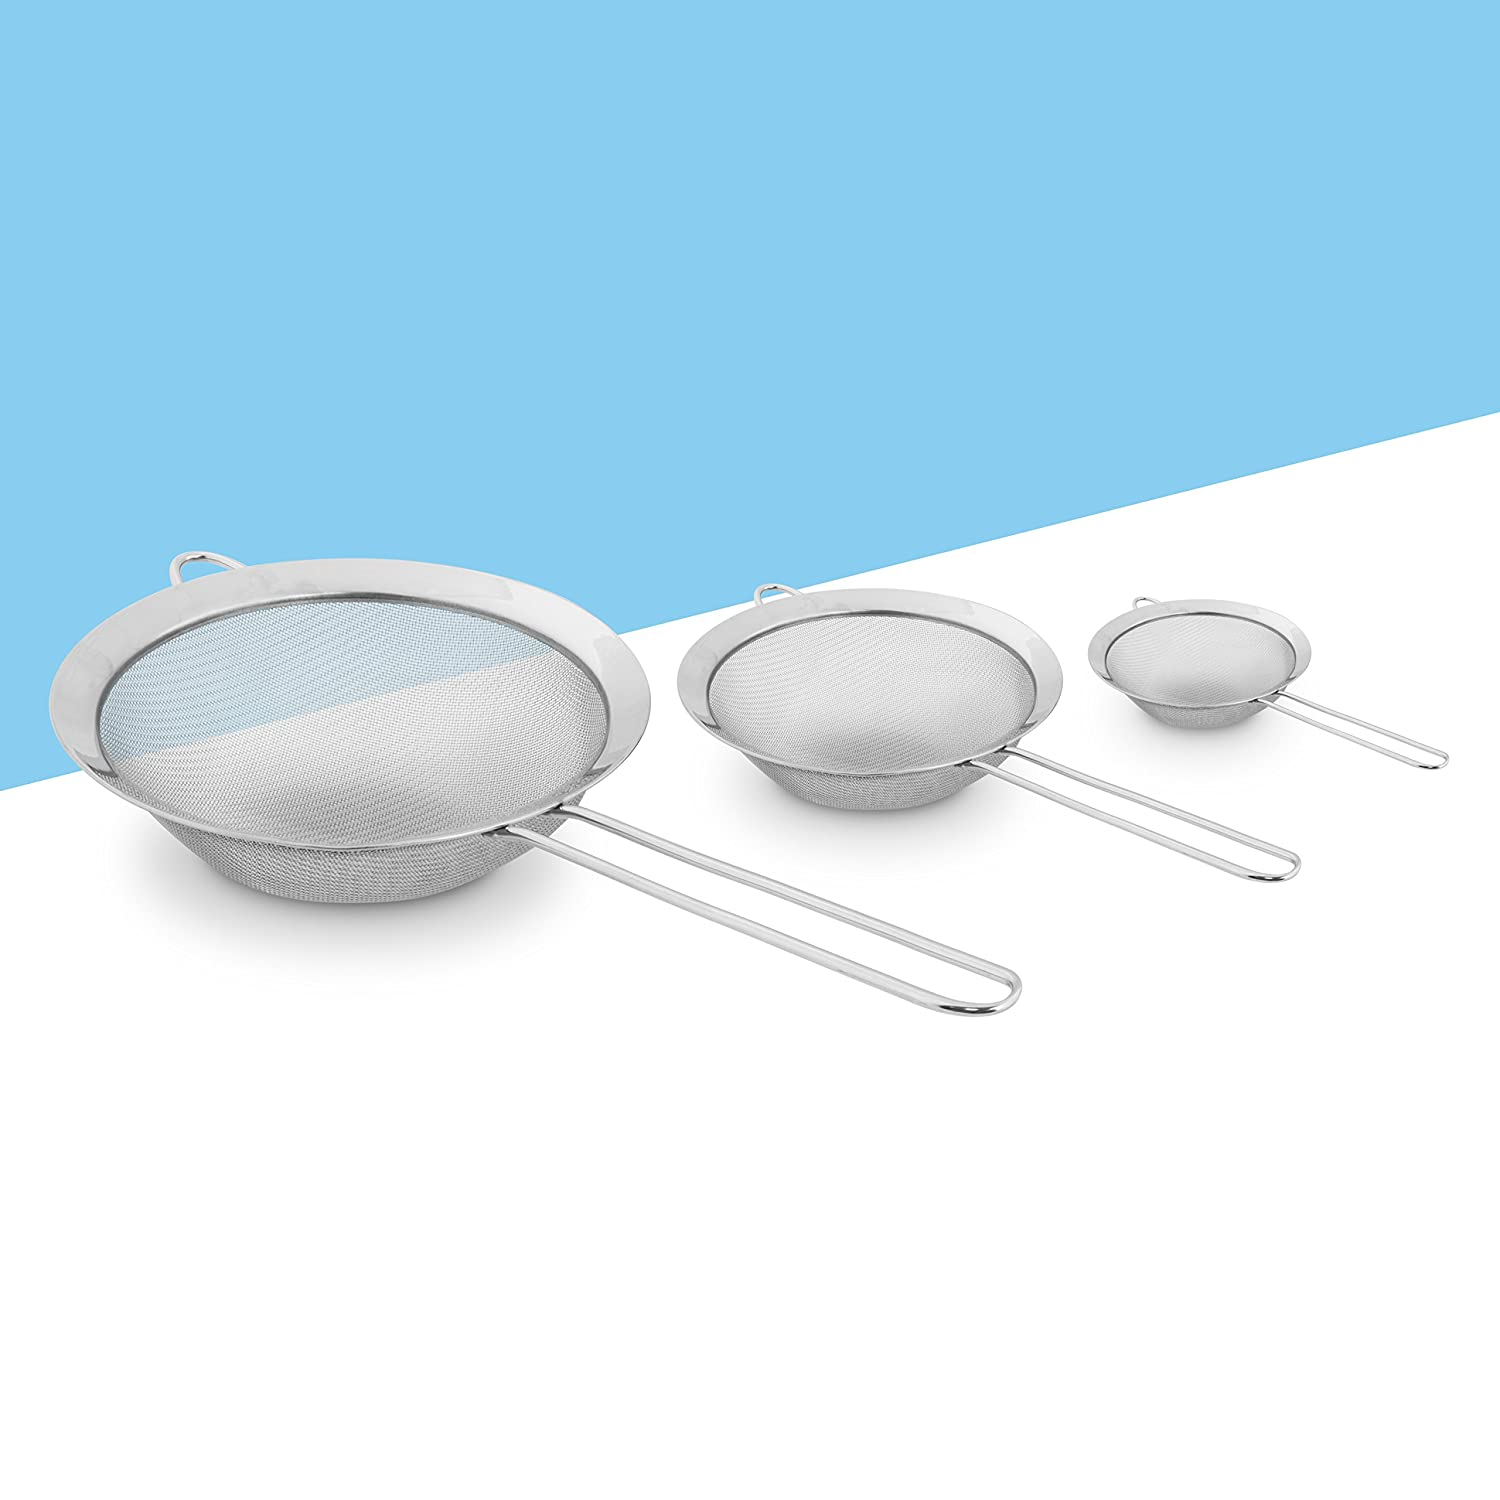 Stainless Steel Strainer Set - 3 Sieve Head Sizes 8, 12 and 18 cm ...